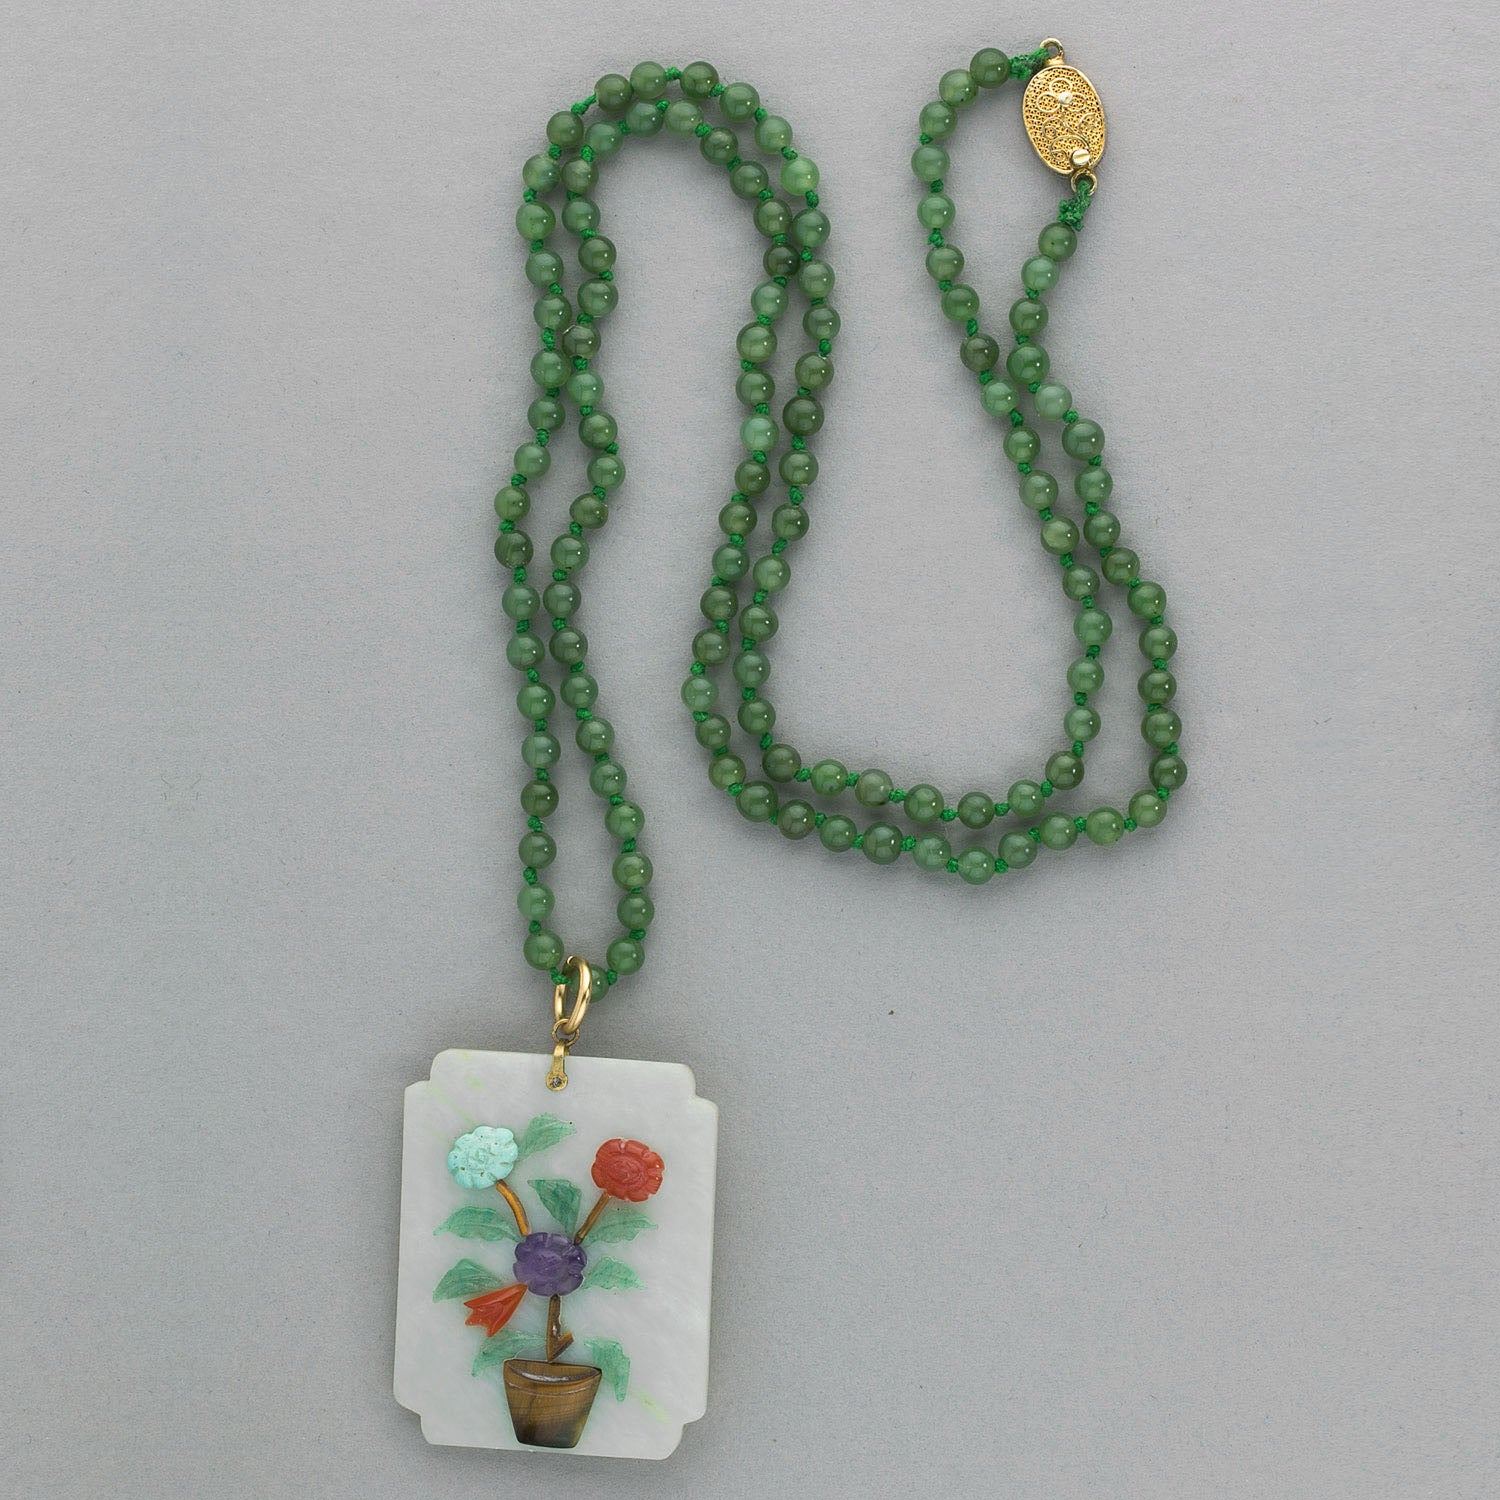 Vintage jade pendant necklace with figural mosaic of applied vintage jade pendant necklace with figural mosaic of applied gemstones and knotted jade bead strand aloadofball Gallery